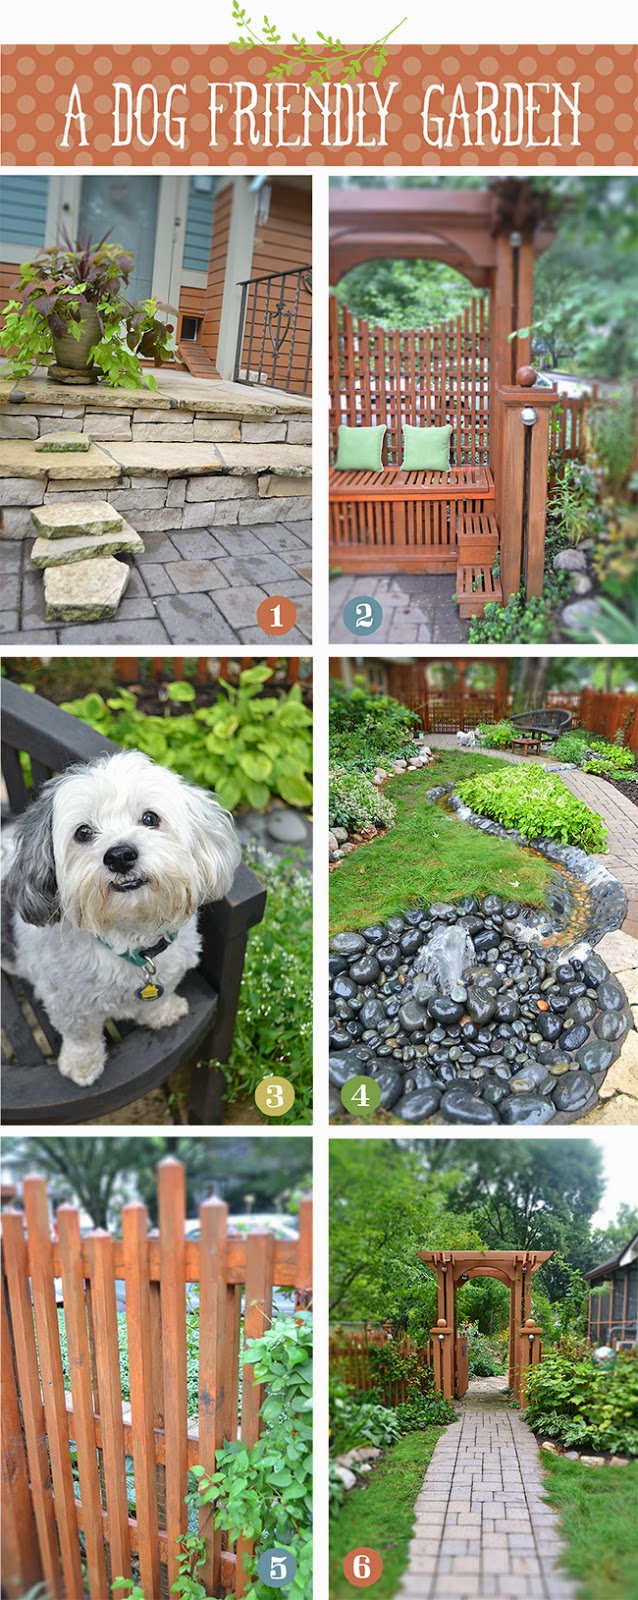 lisa orgler design a dog friendly garden